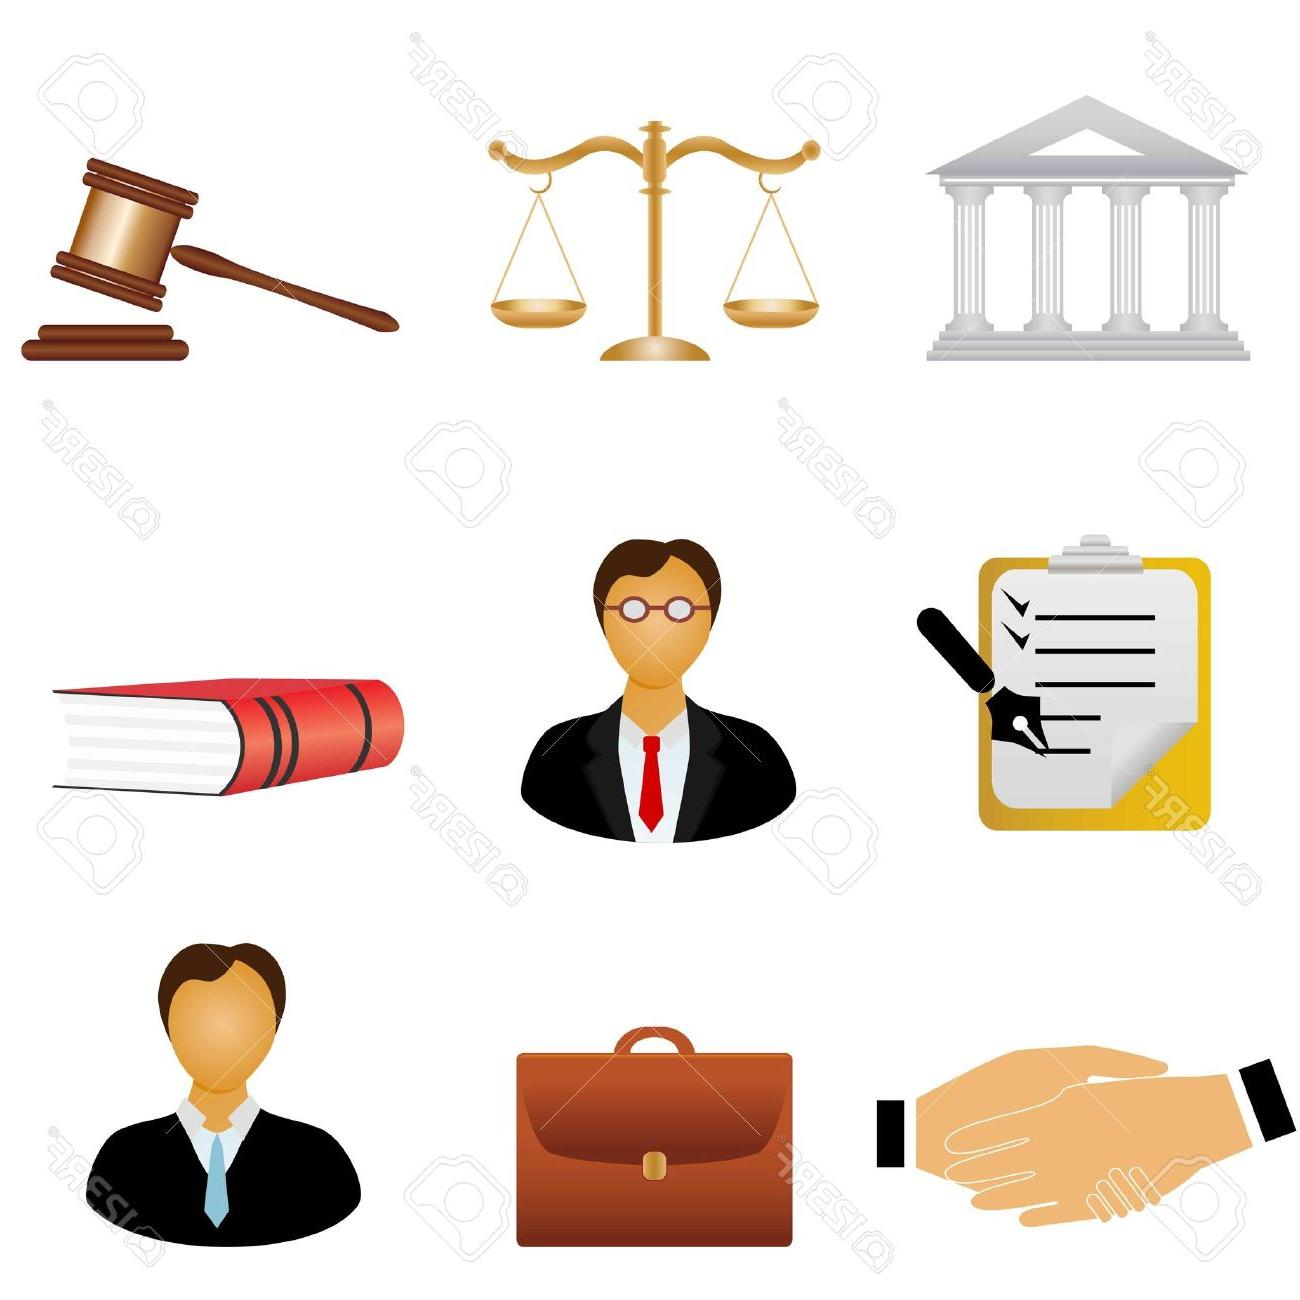 Free legal clipart images picture black and white download Best Legal Symbols Clip Art Library » Free Vector Art, Images ... picture black and white download